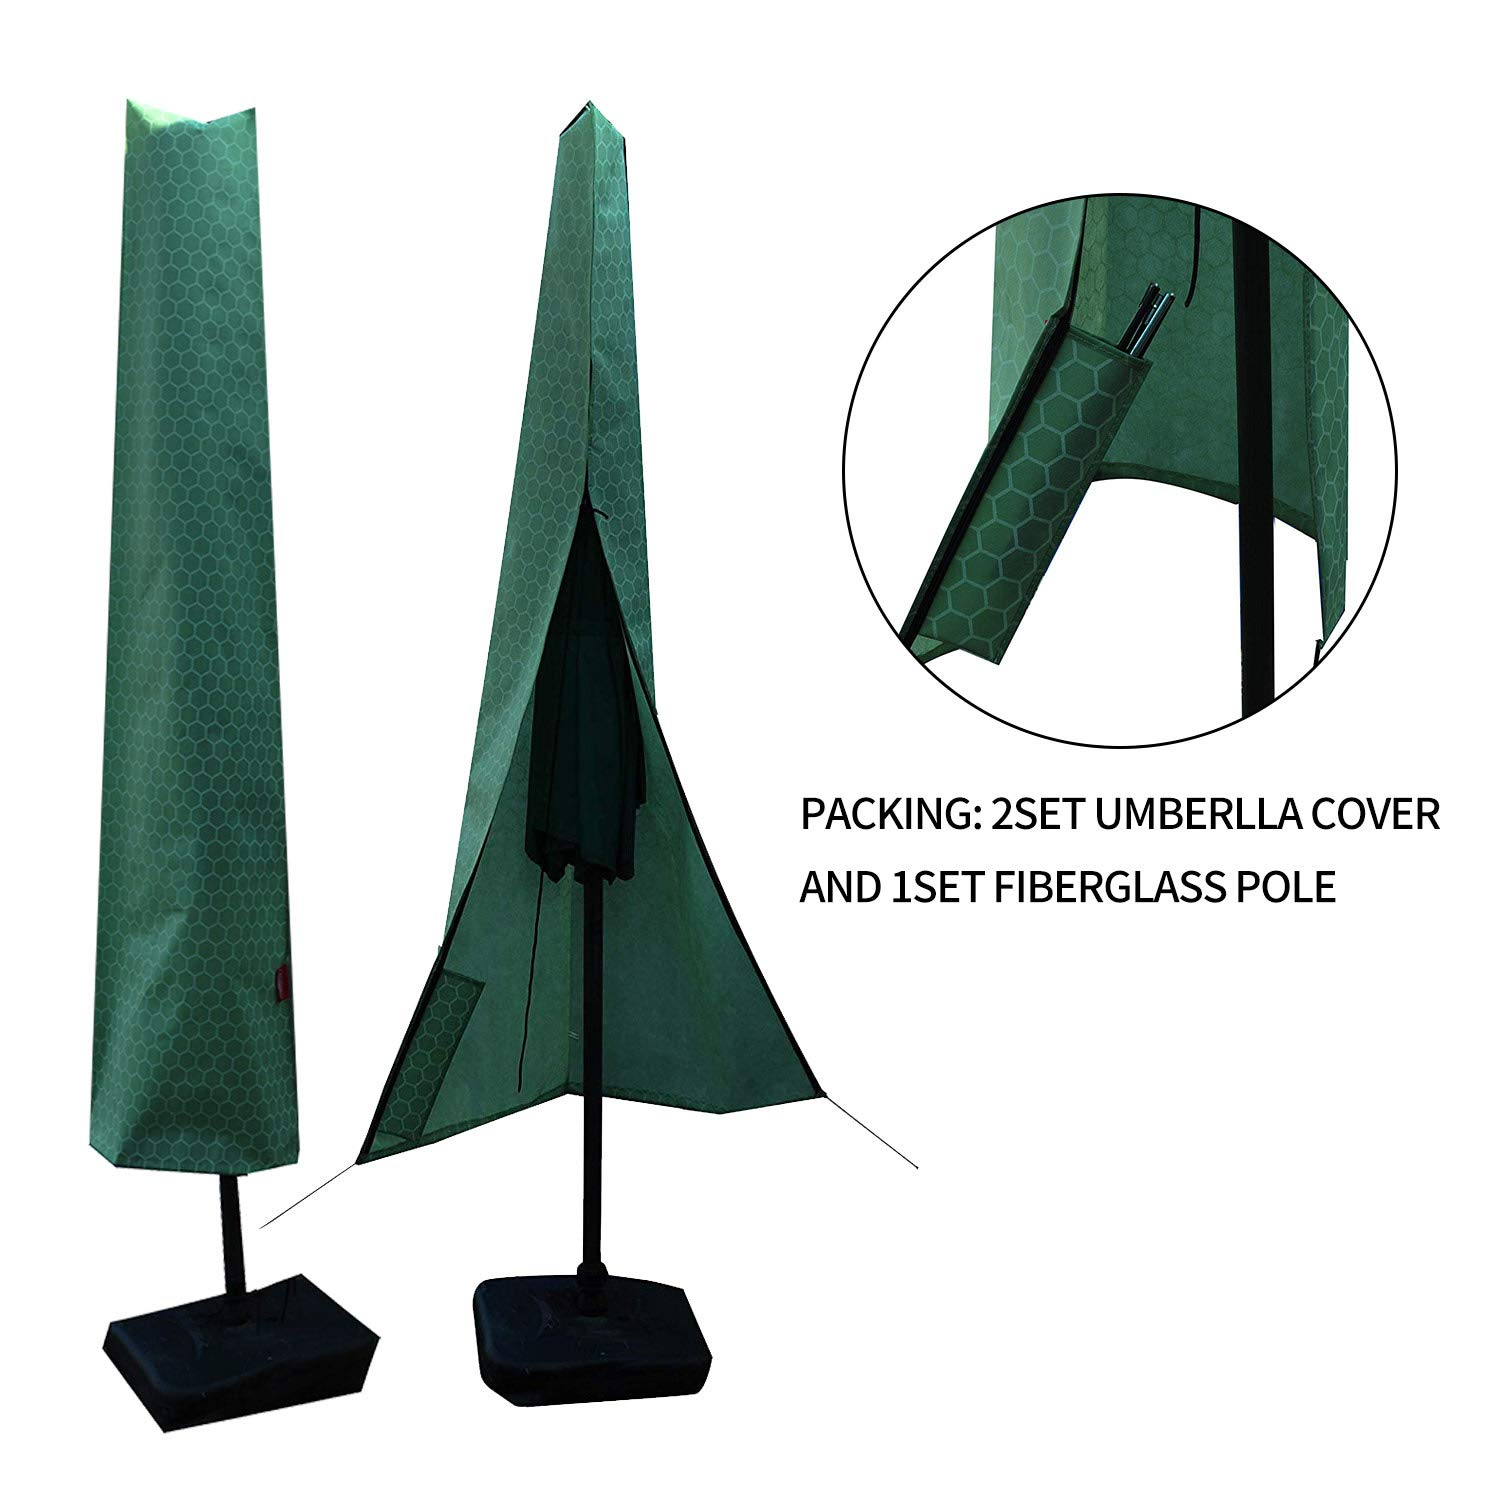 2set Umbrella Covers,Patio Waterproof Market Parasol Covers with Zipper for 8ft to 11ft Outdoor Umbrellas Large Included A Set Fiberglass Pole by acoveritt